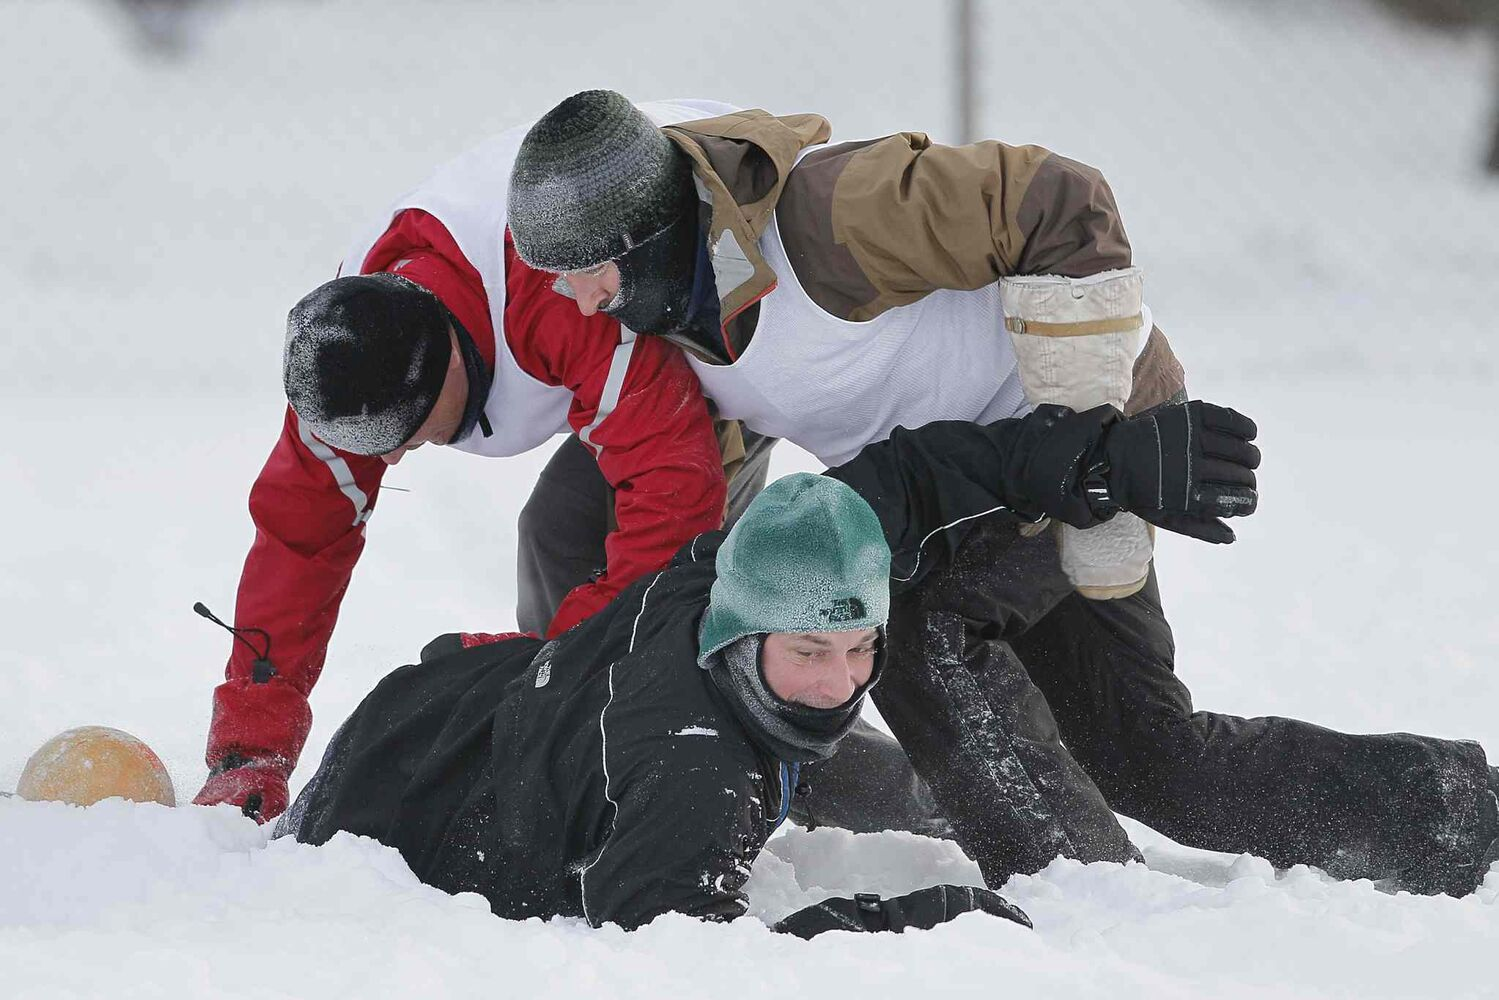 Brett Hudson, Mark Reed, and Mitch Decaire of Sue's Socceroos and Mara's Mountaineers play some soccer in the snow at their annual Snow Bowl at LaVerendrye School Saturday, December 28. (Winnipeg Free Press)